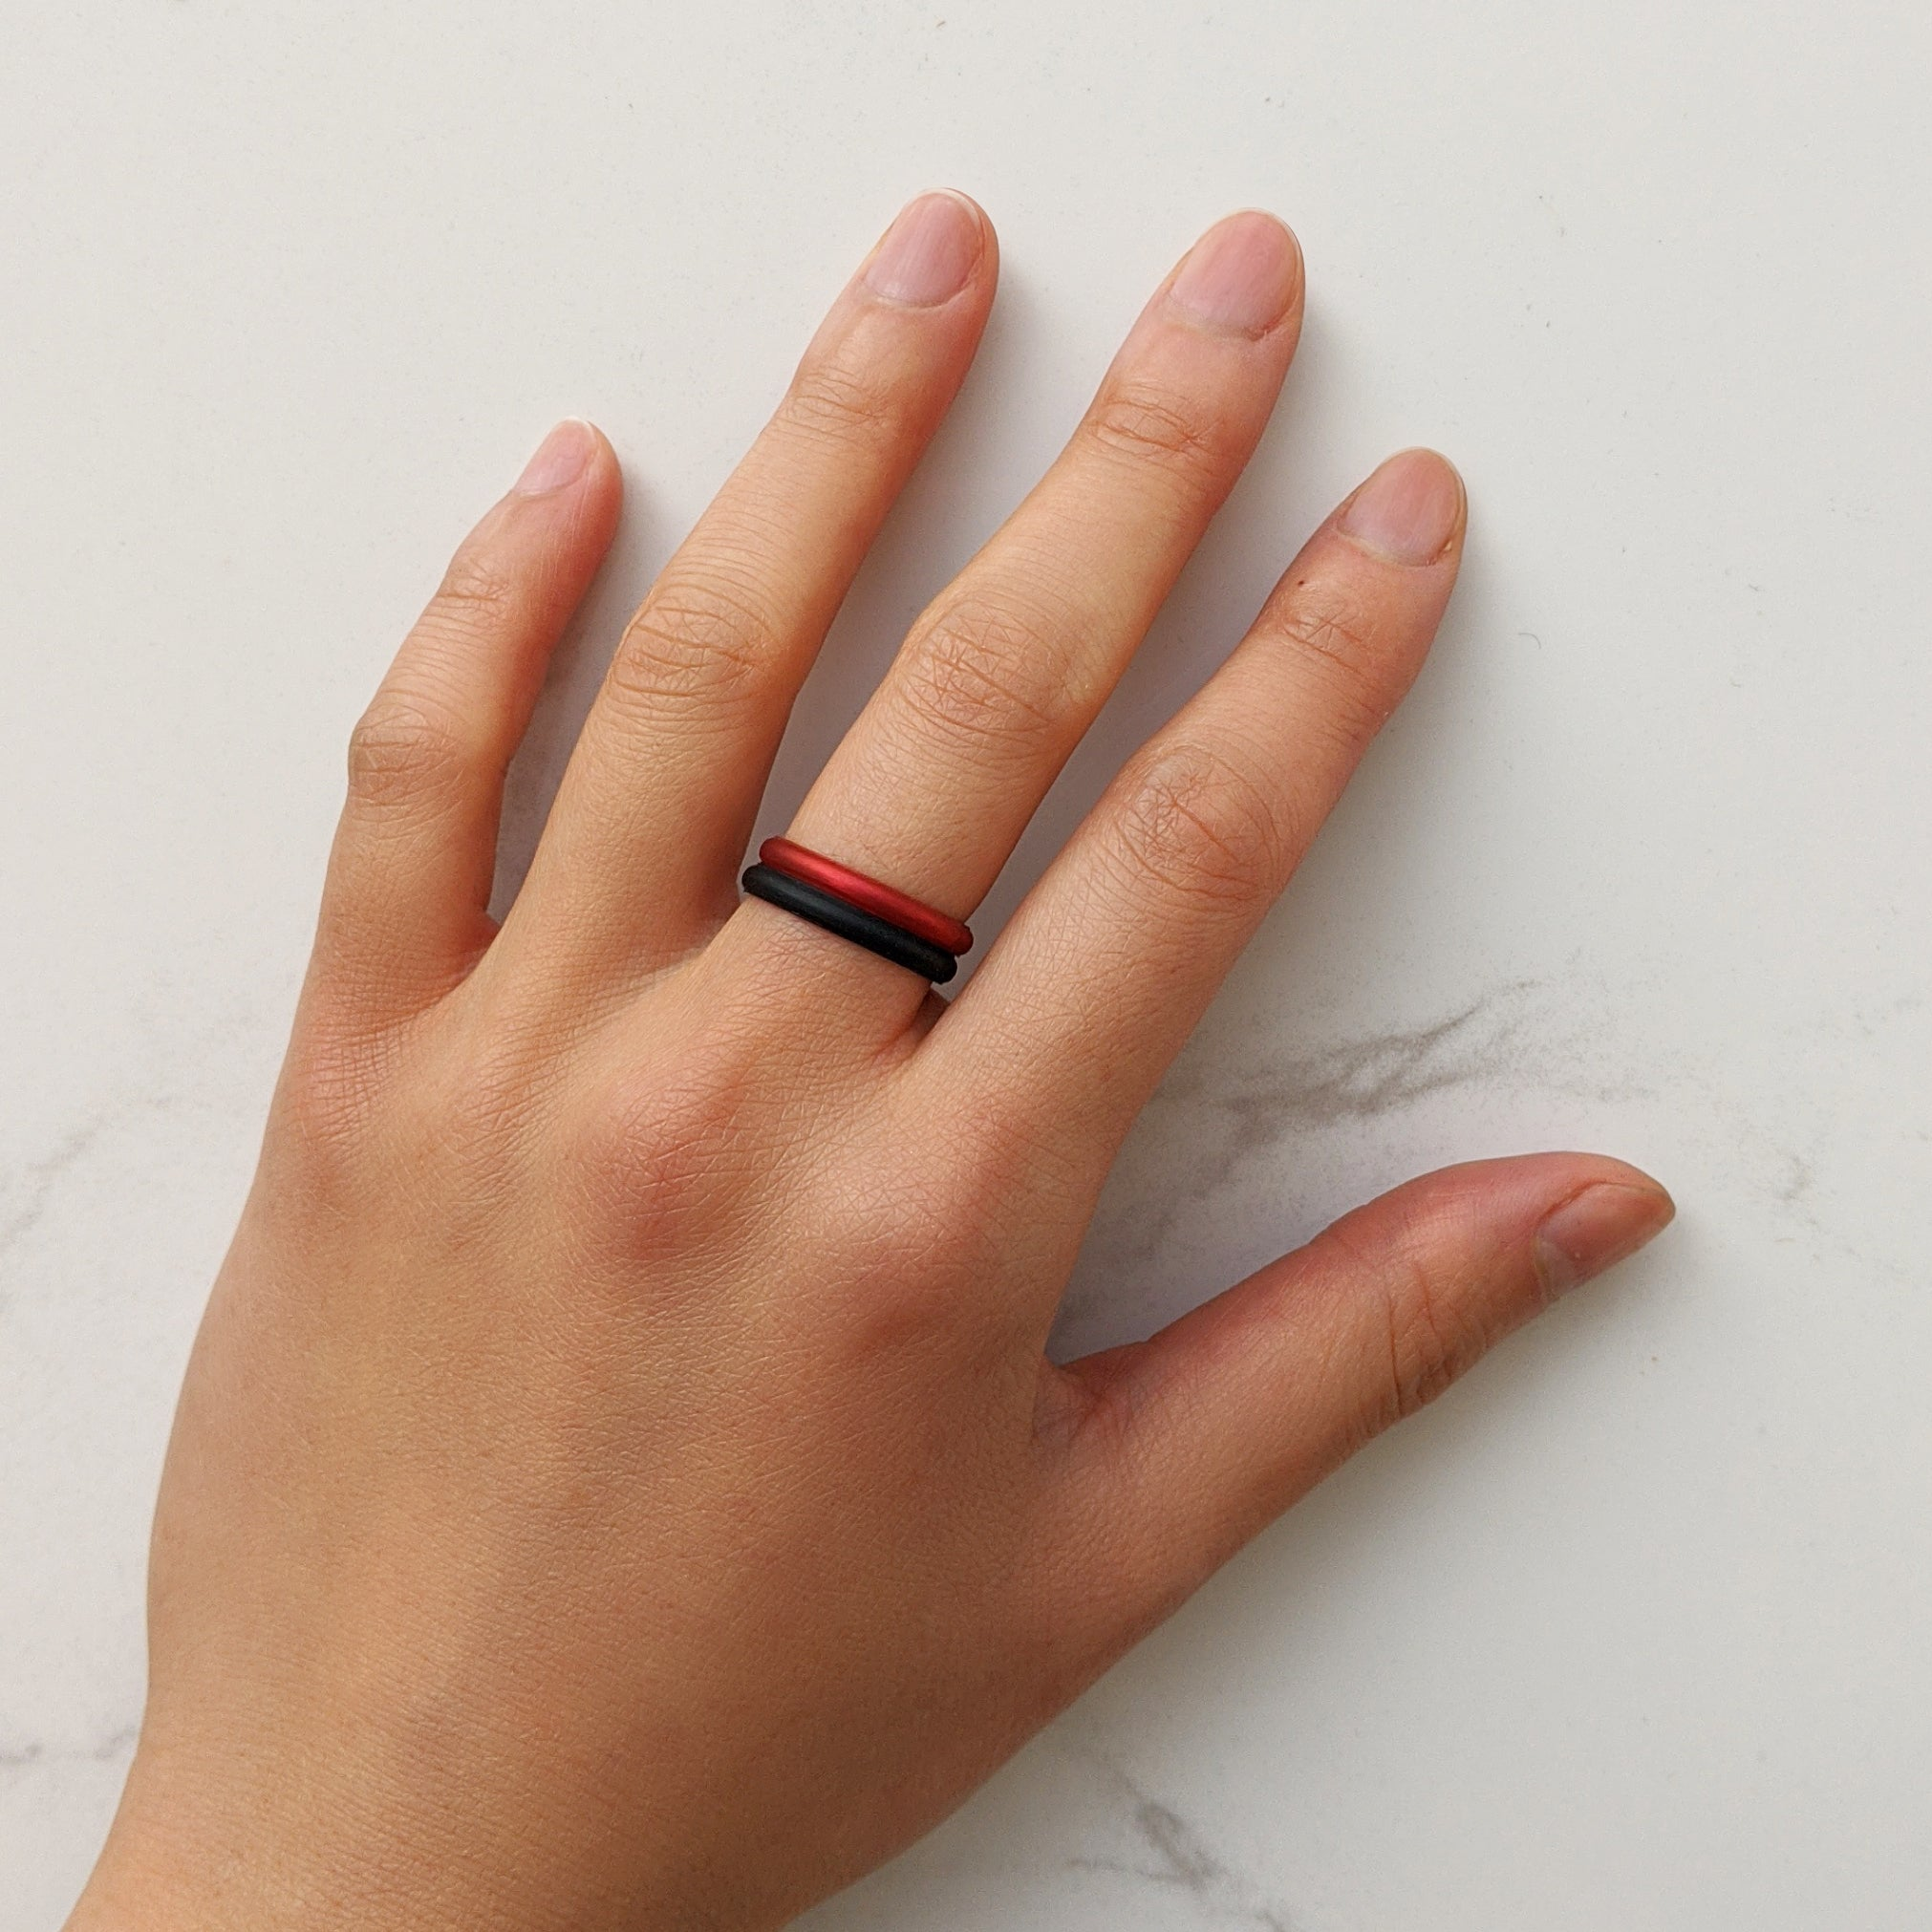 Metallic Red Garnet Stackable Slim Thin Breathable Silicone Ring for Women